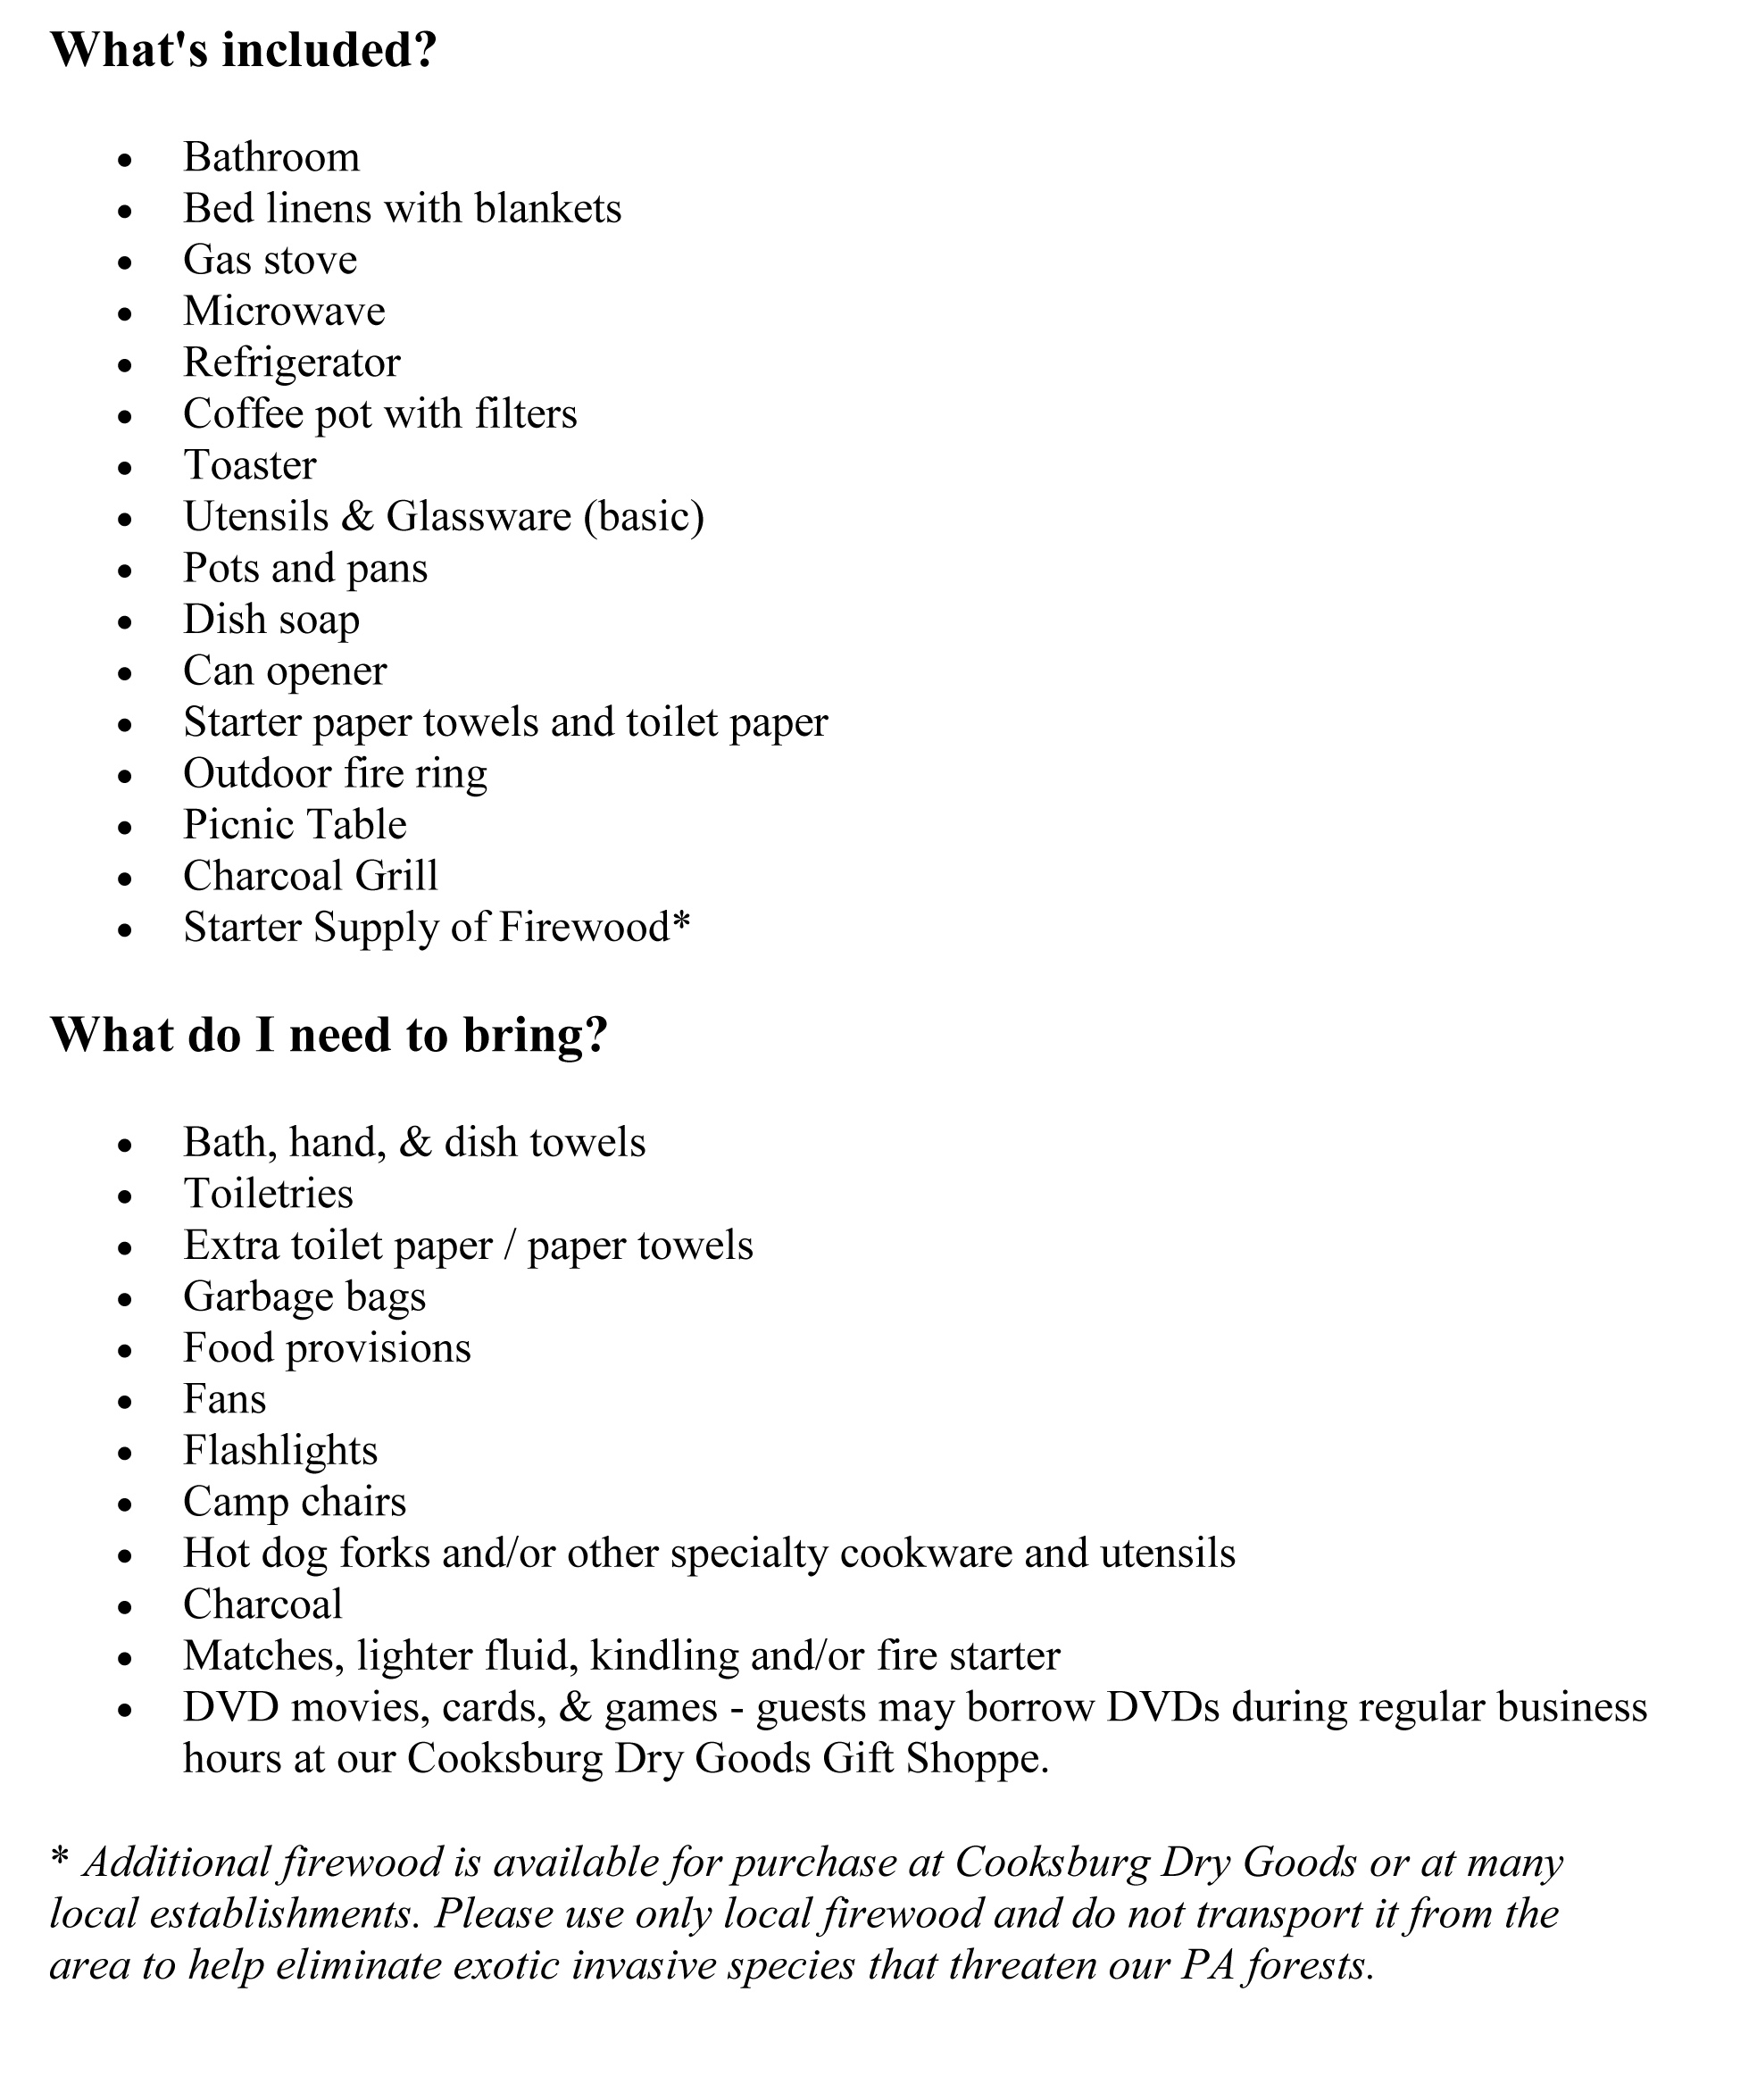 Things to Bring (FW and WO)